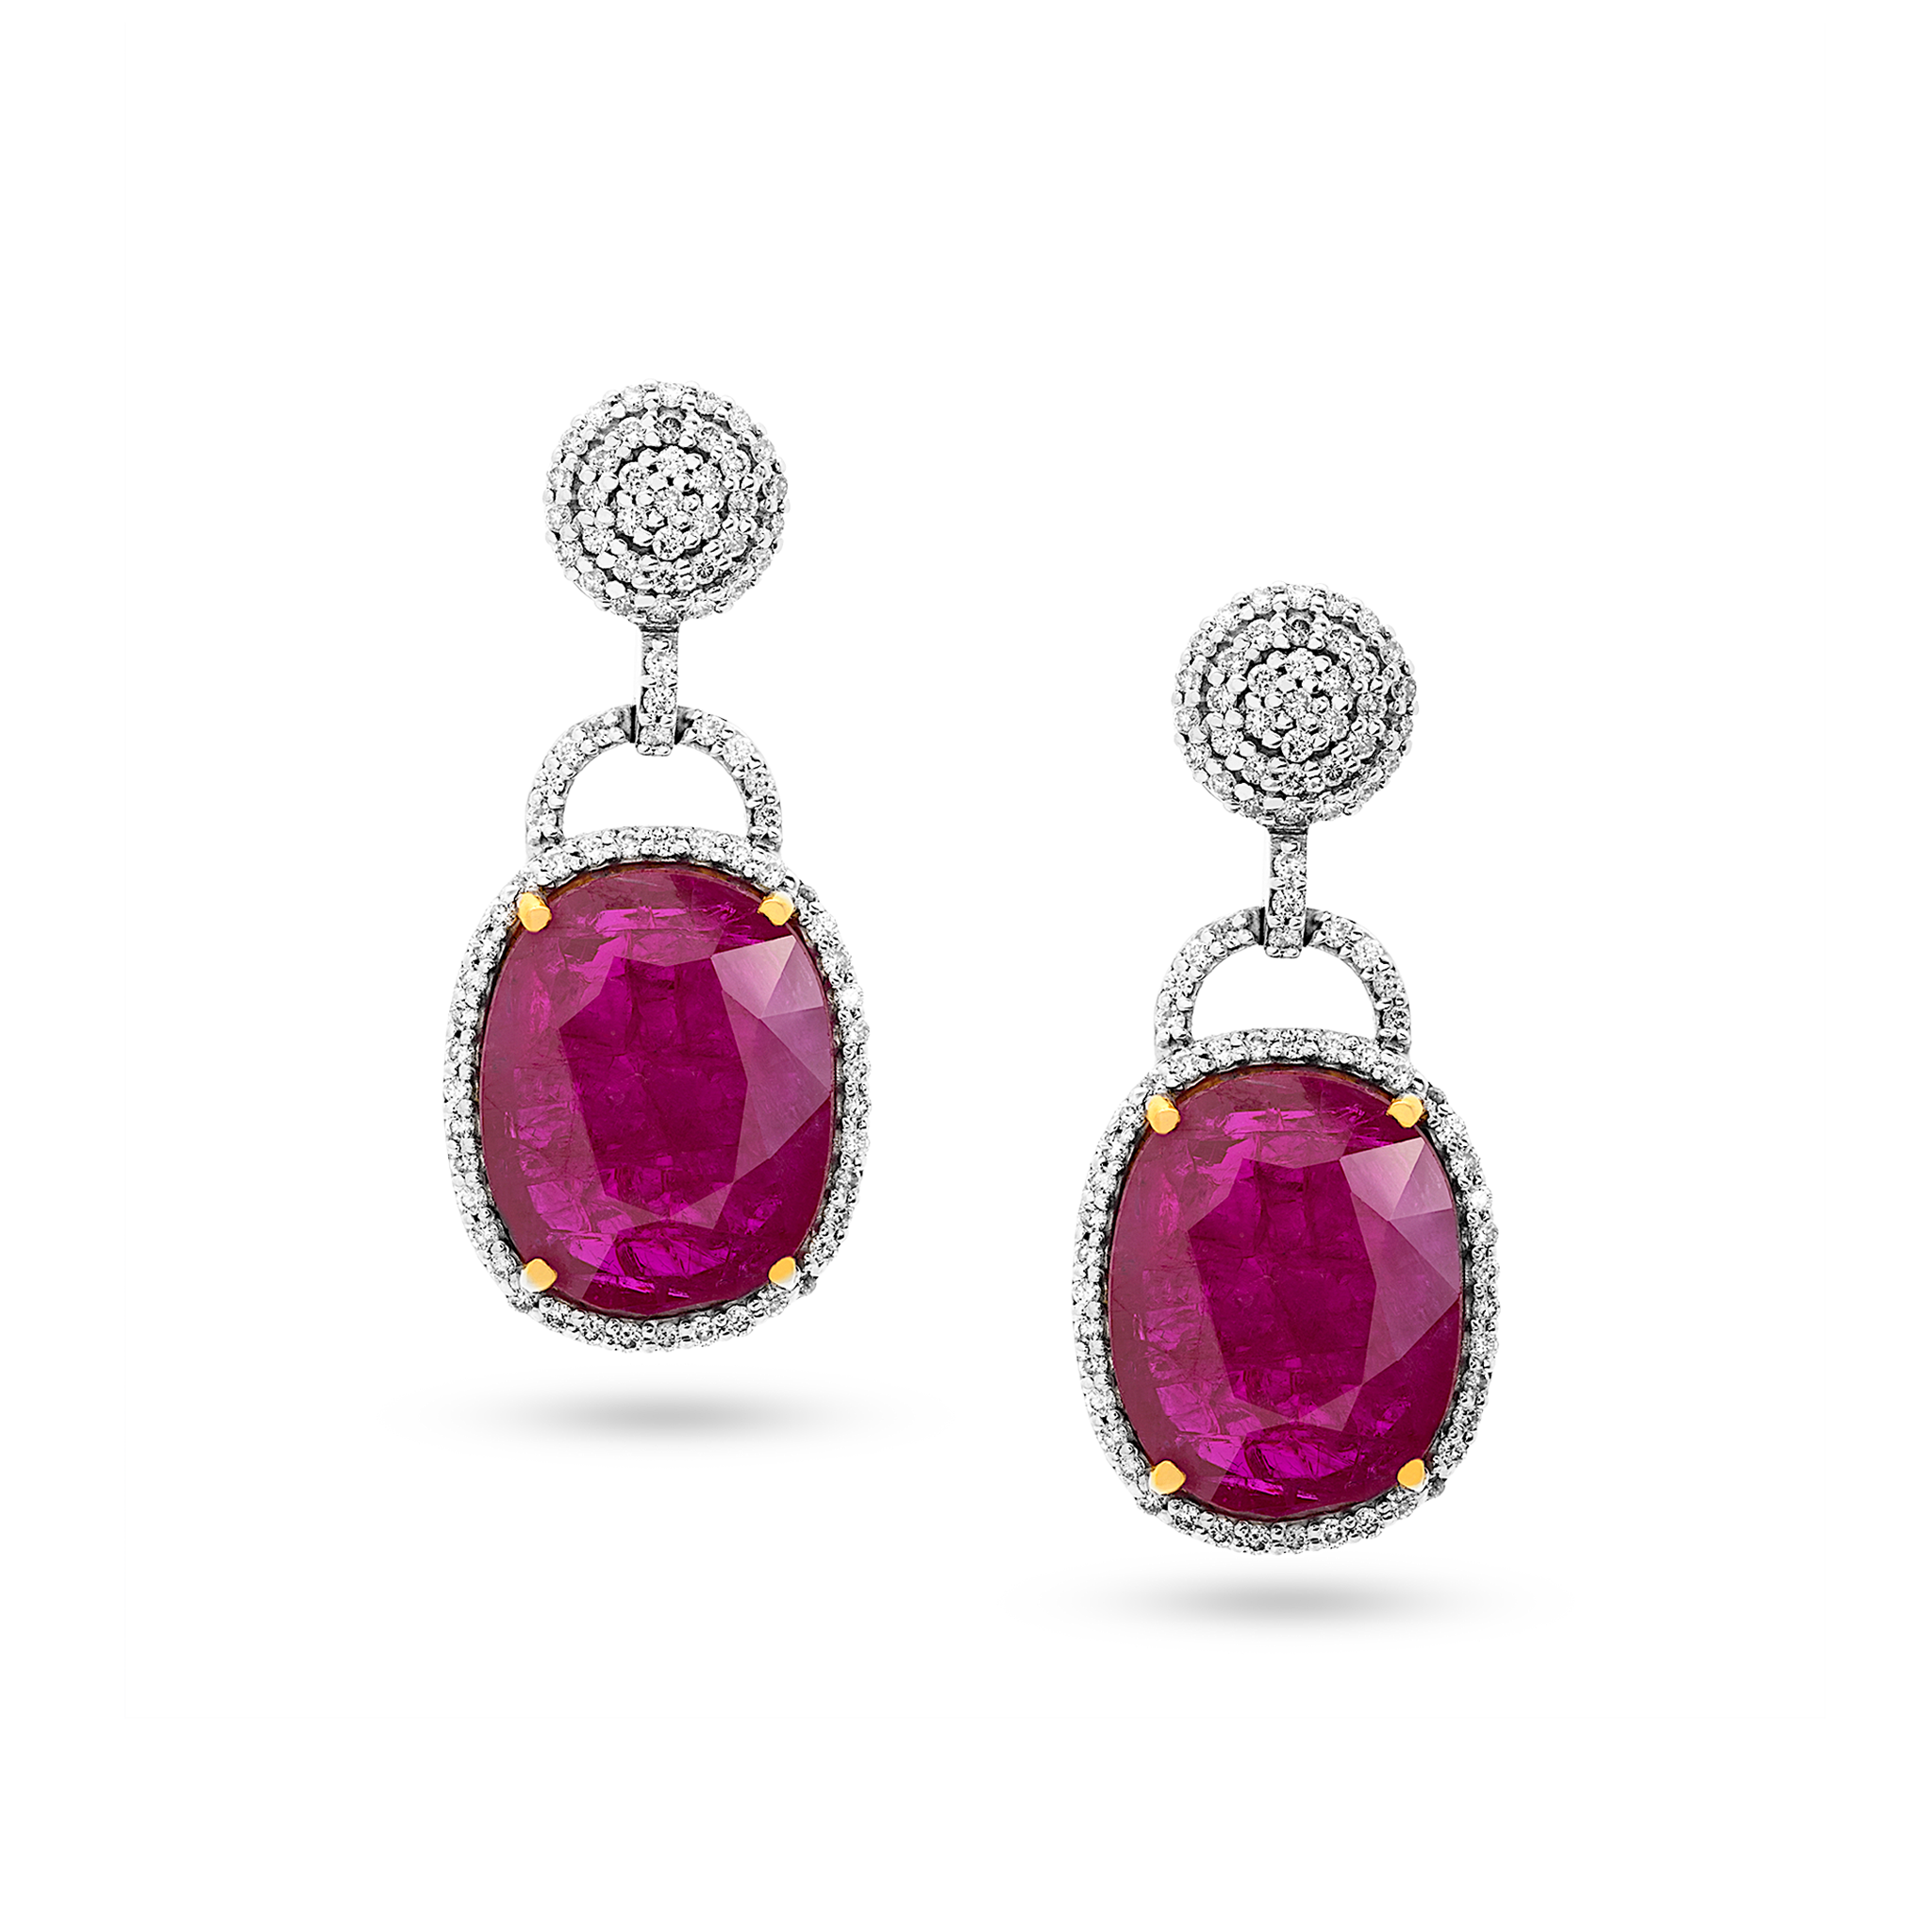 18K Yellow Gold, Ruby, and Diamond Earrings